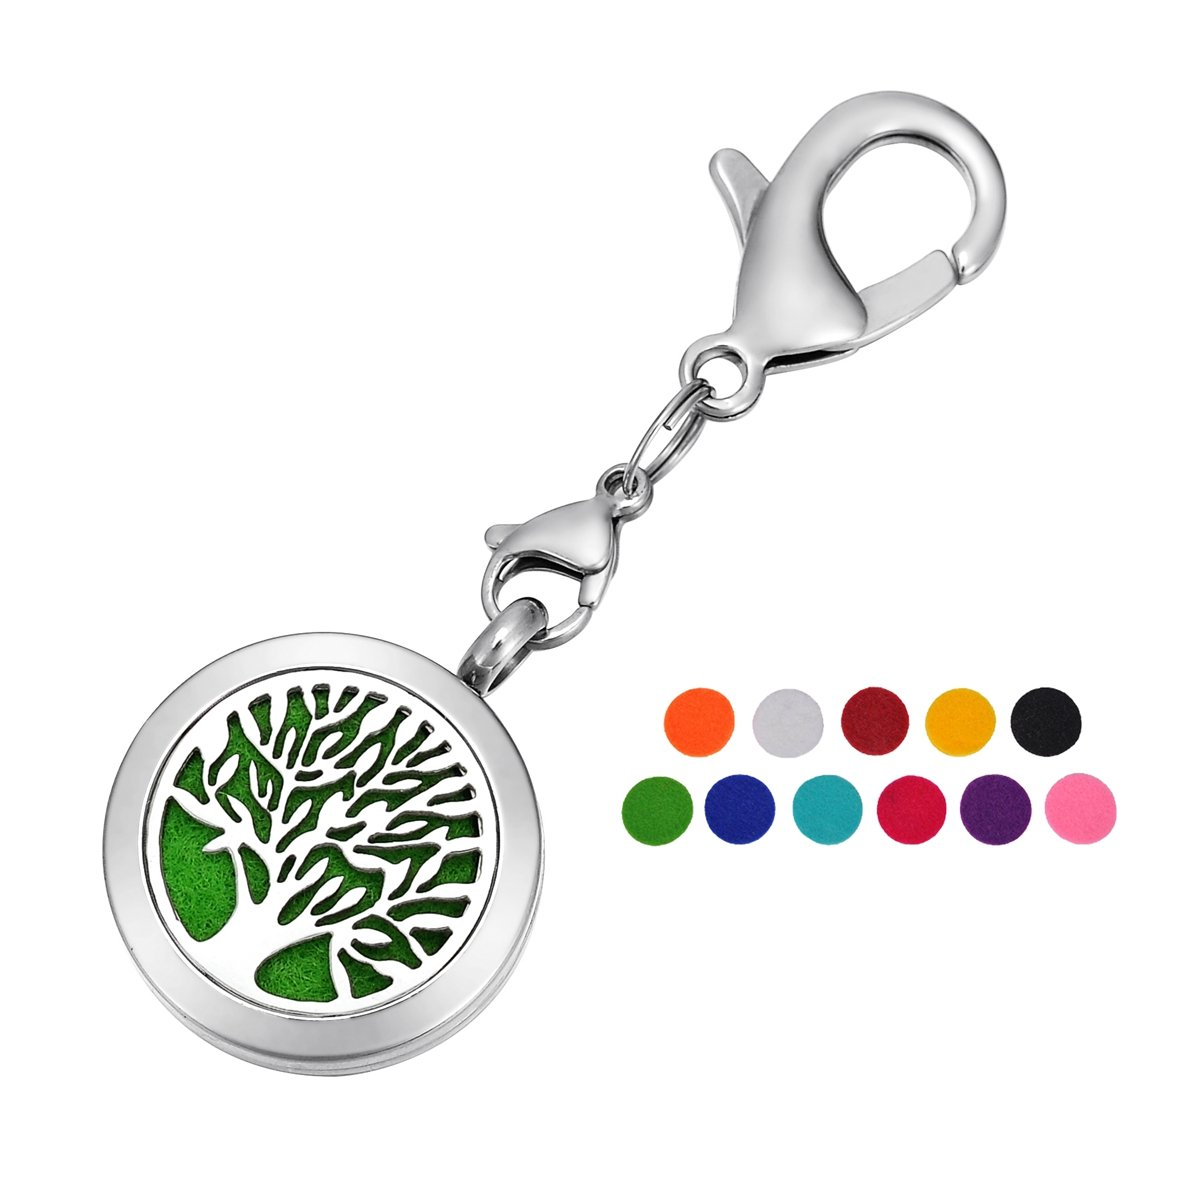 HOUSWEETY Tree of Life Aromatherapy Essential Oil Diffuser Necklace Keychain Key Ring Locket Jewelry with 11 Refill Pads HOUSWEETYB104688+B110351